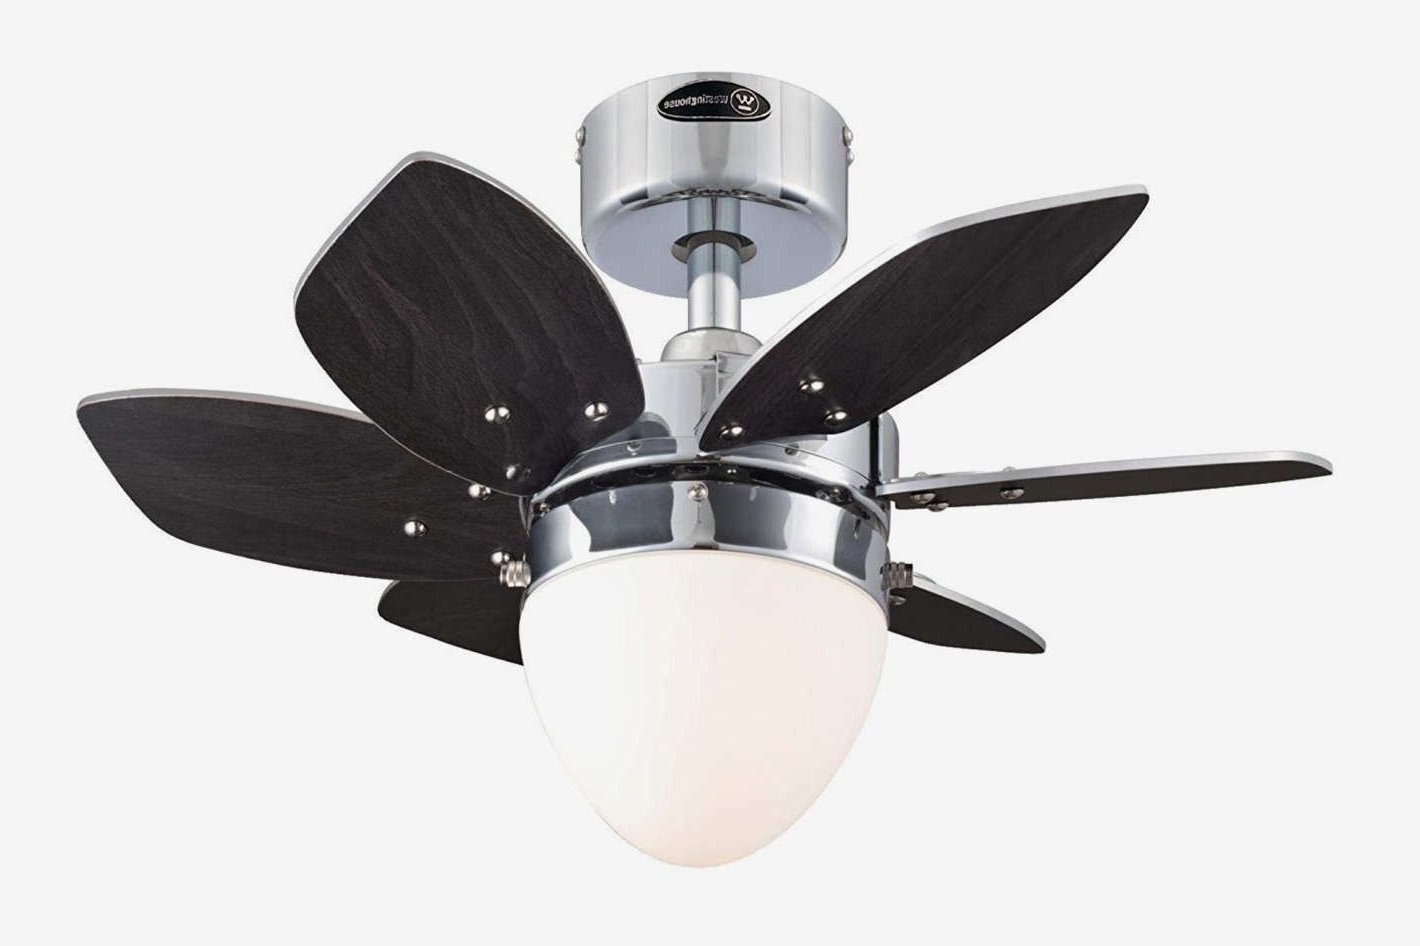 Latest Outdoor Ceiling Fans Under $150 In The 9 Best Ceiling Fans On Amazon  (View 8 of 20)